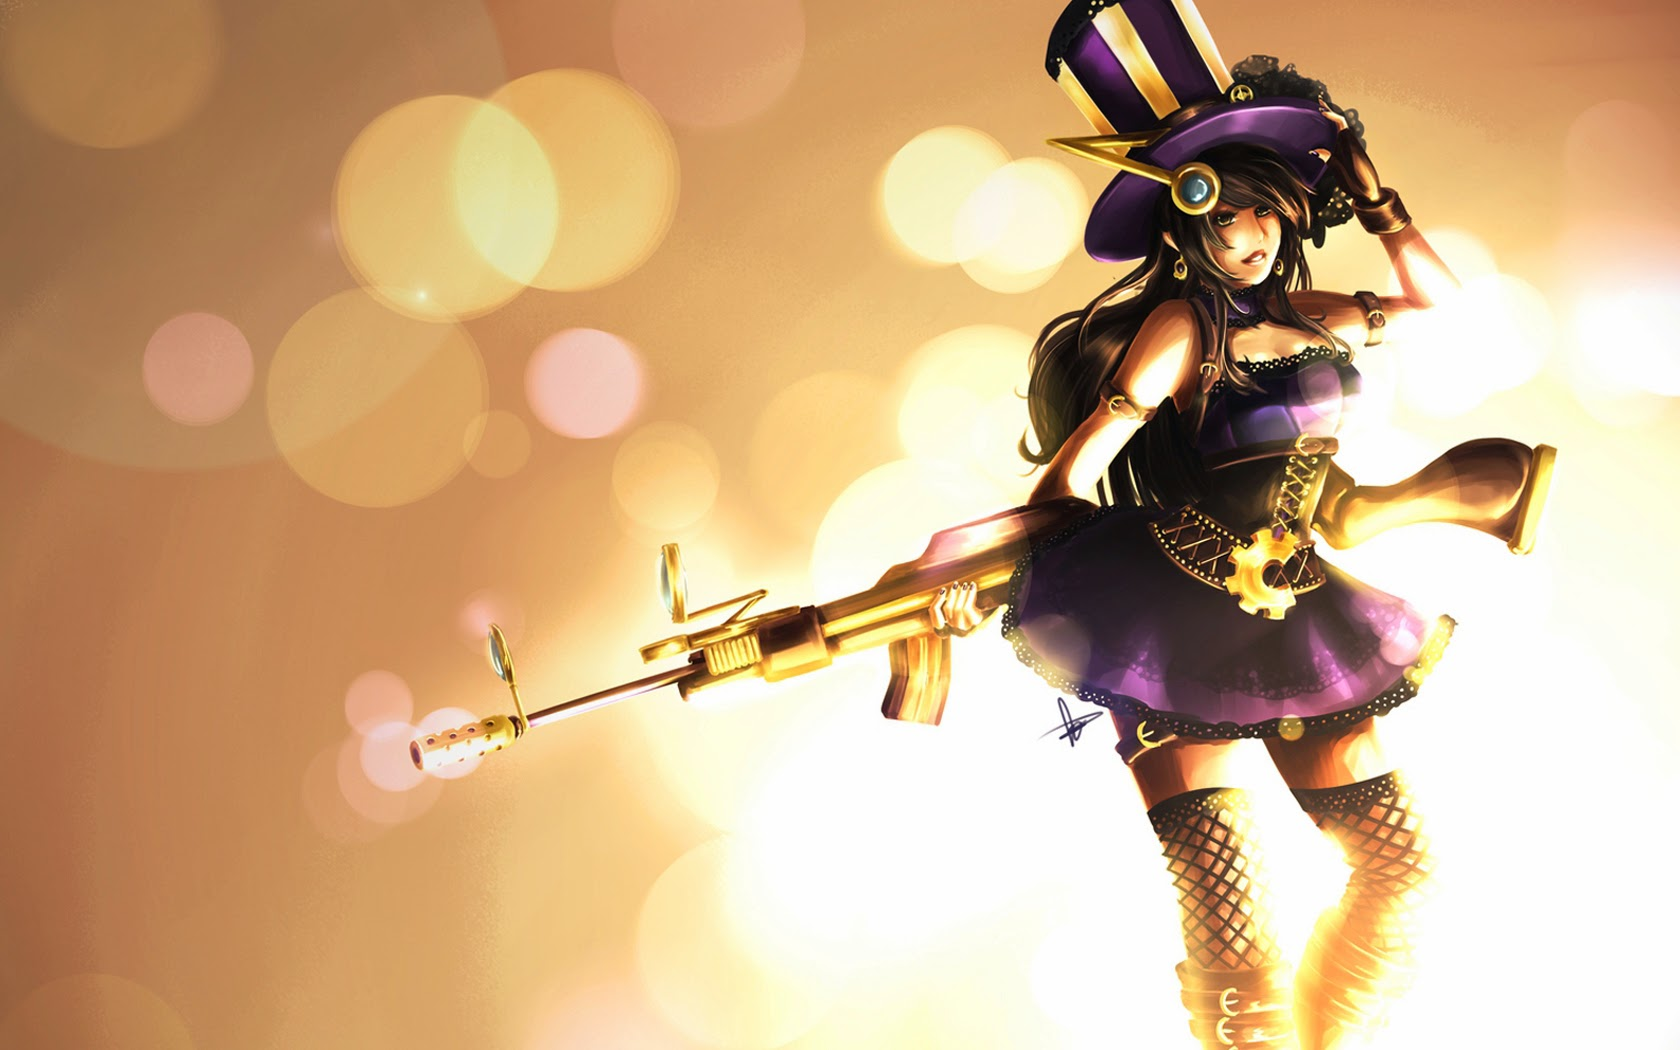 Gallery For > League Of Legends Caitlyn Hot